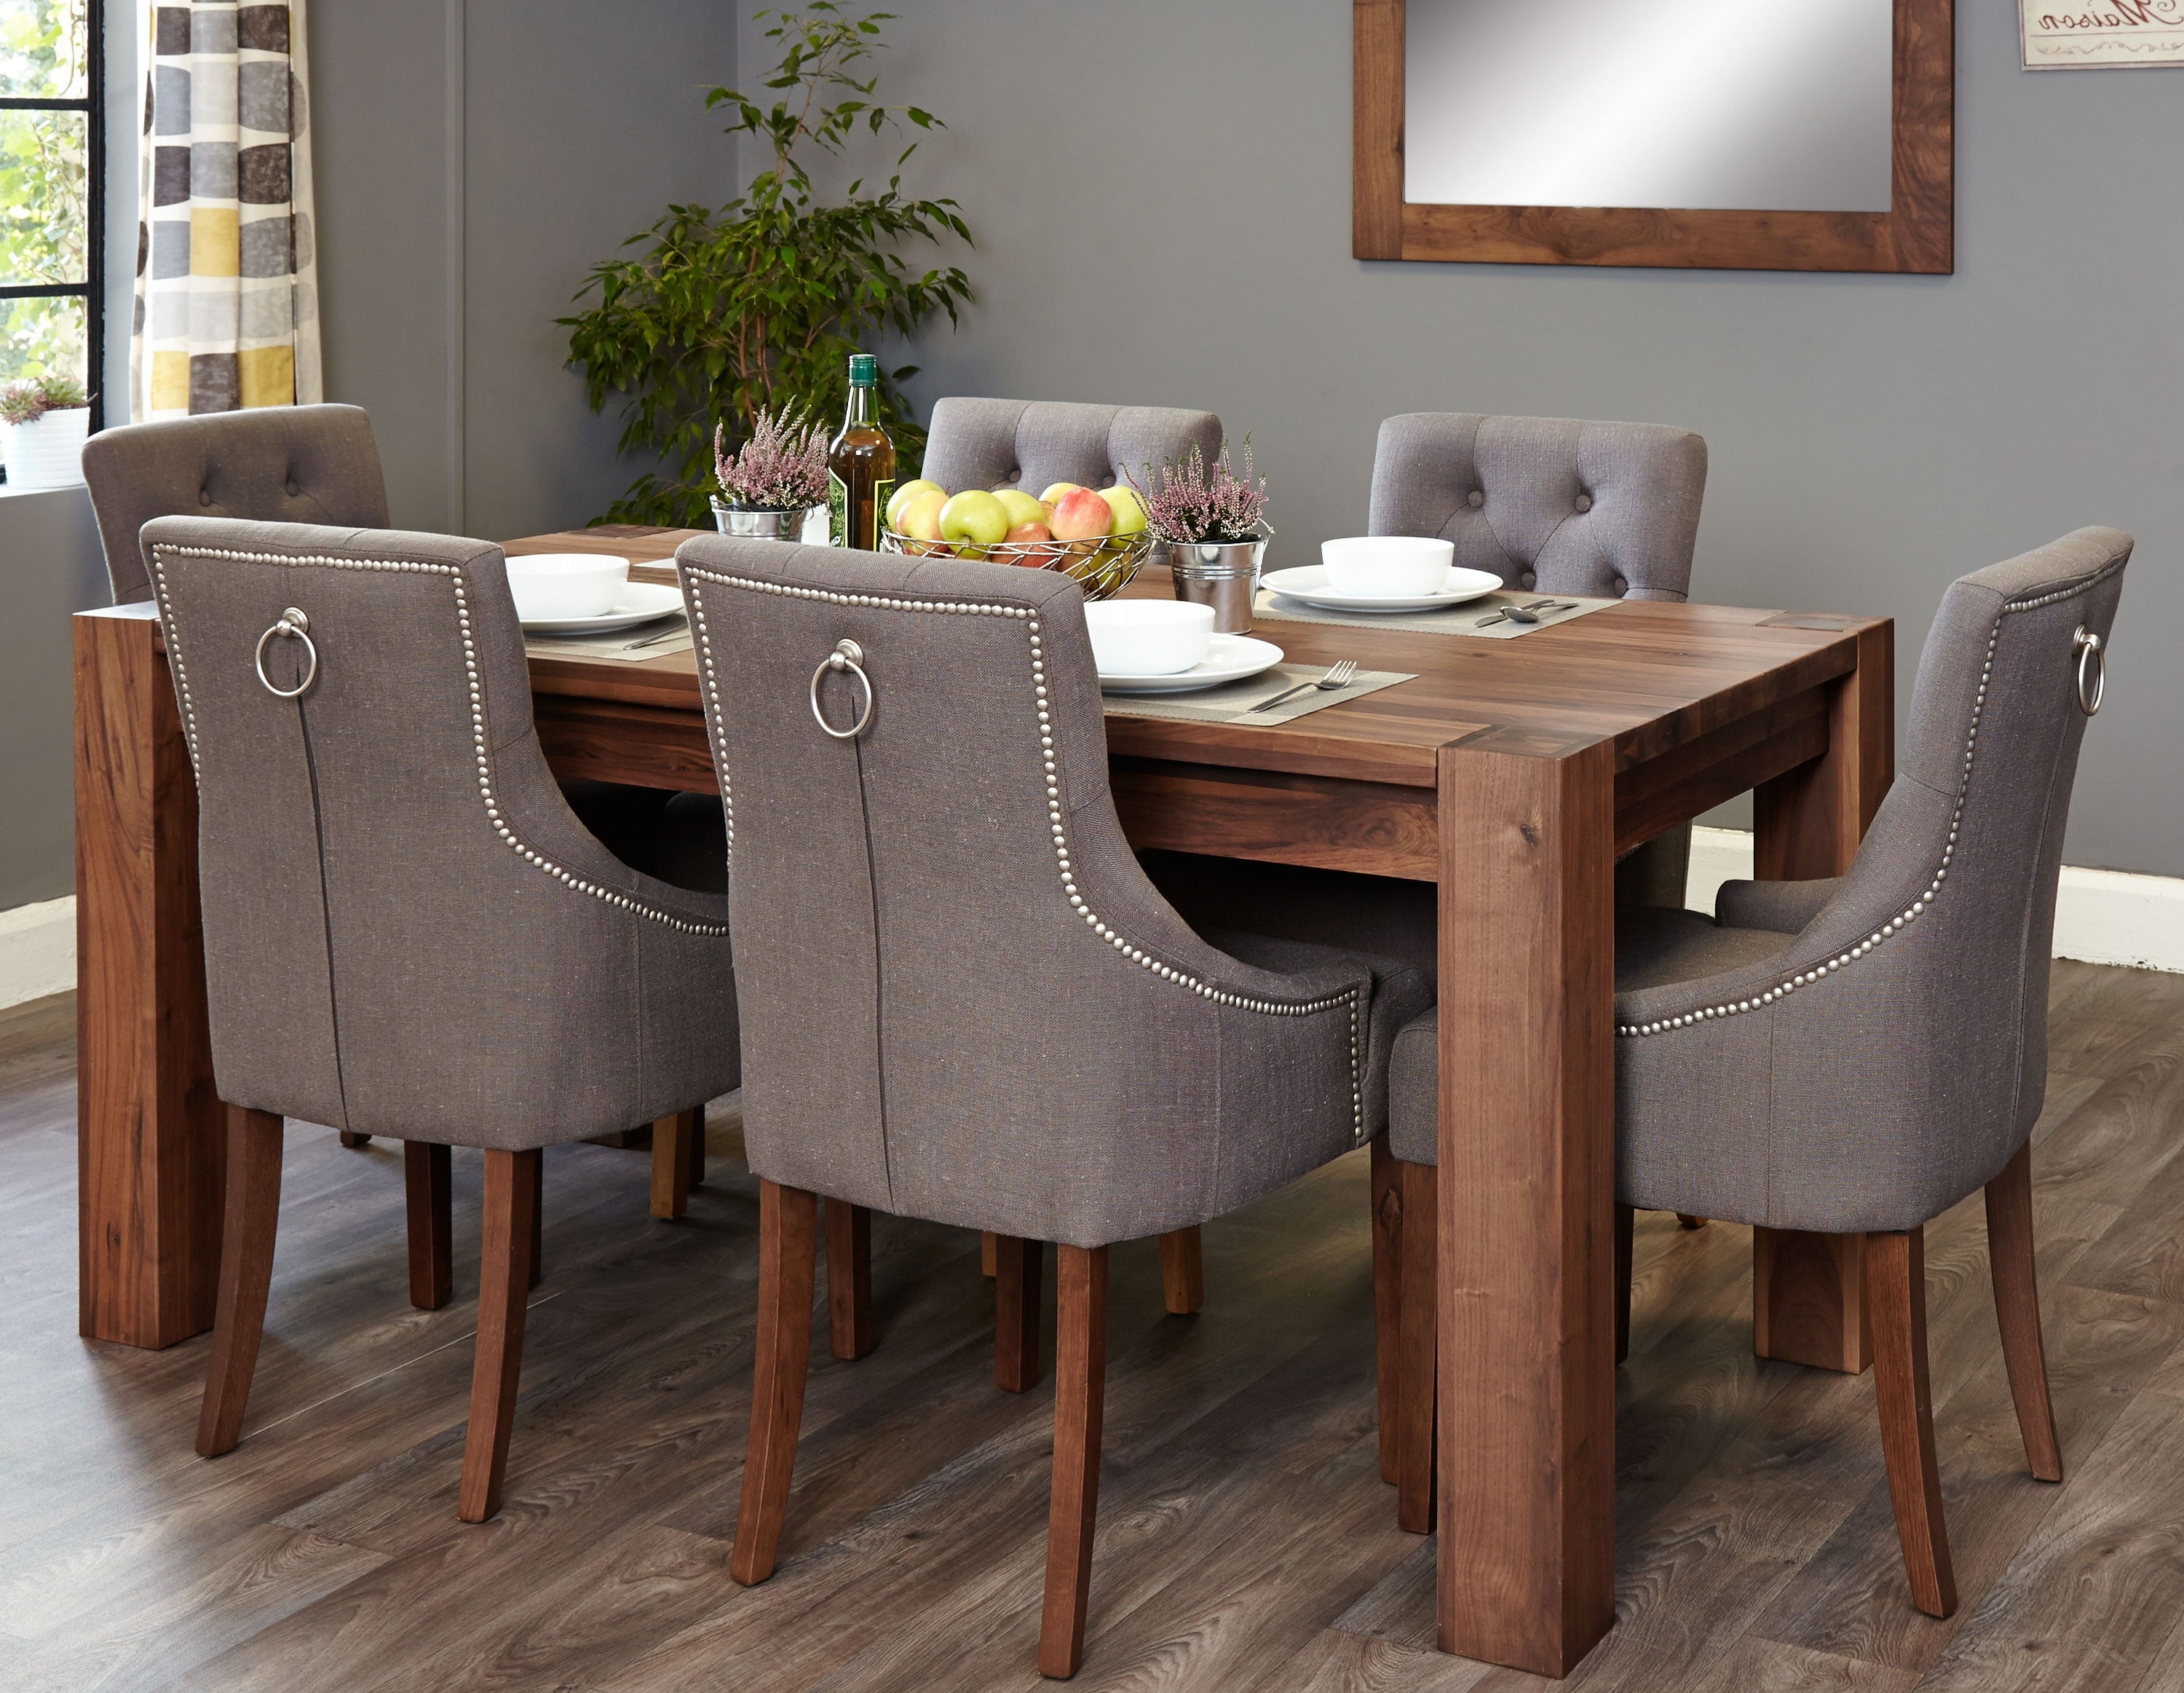 Create The Ultimate Entertaining Space With Our New Range Of Walnut Pertaining To Most Recent Oak Dining Tables And Fabric Chairs (View 23 of 25)